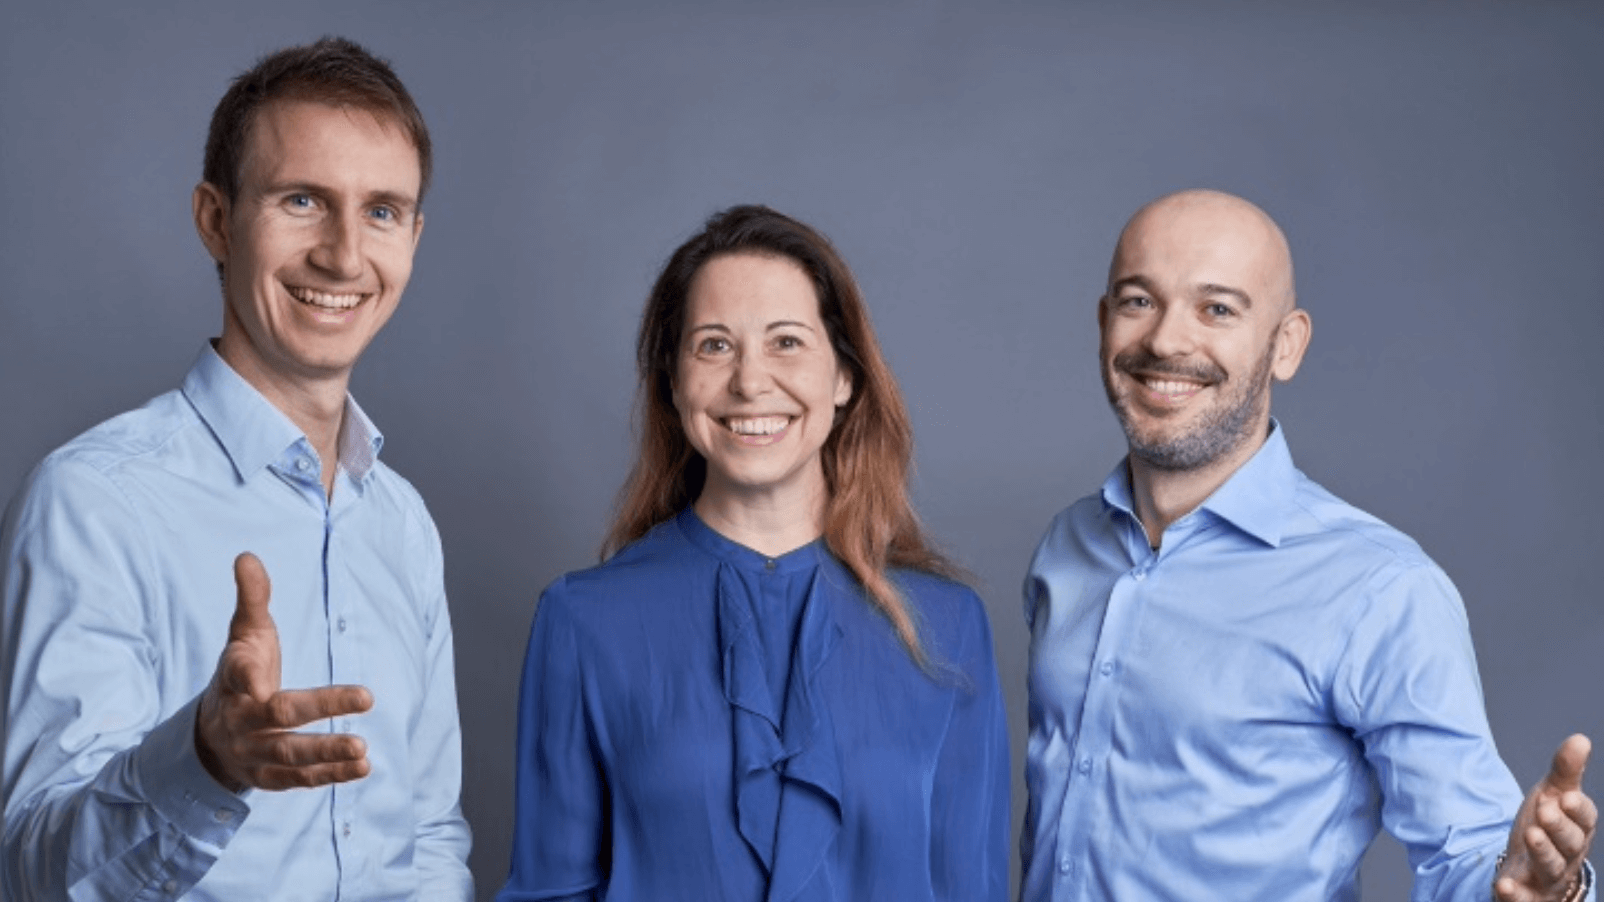 Gilytics Closes Seed Round with High-Tech Gründerfonds, Swiss Startup Group and Zürcher Kantonalbank to Optimize Energy Infrastructure